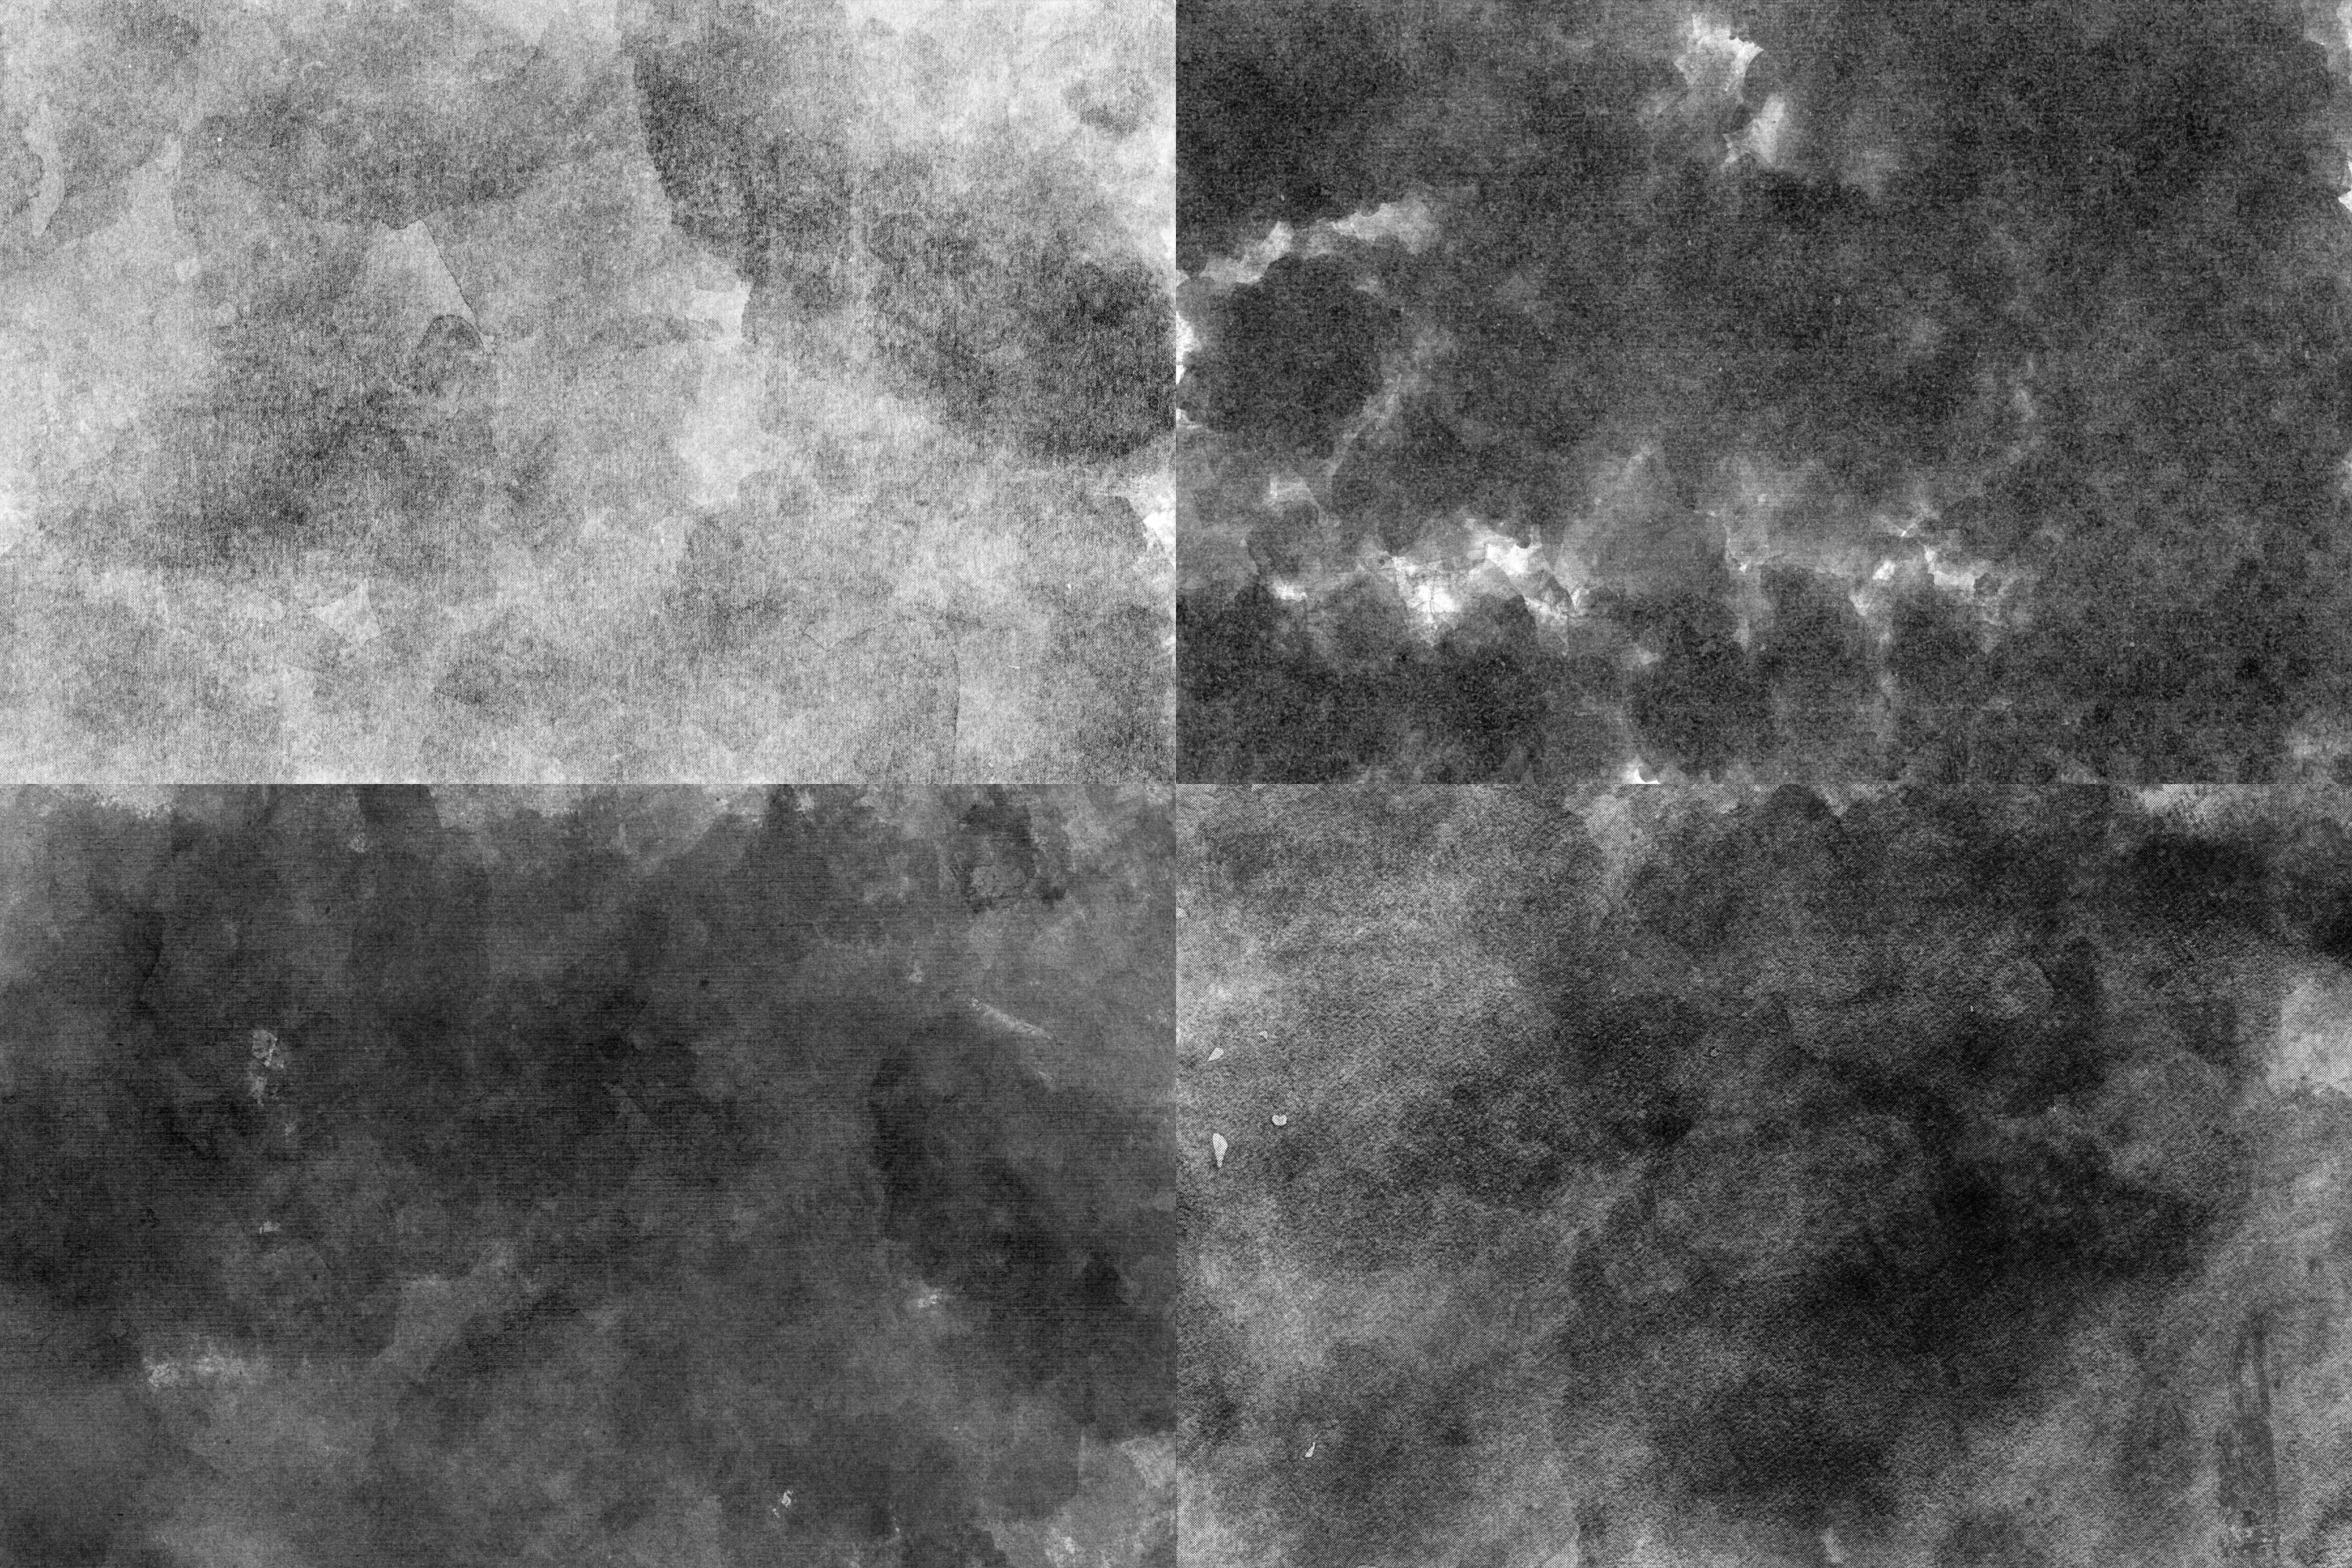 Grunge - Retro Paper Textures Pack example image 5